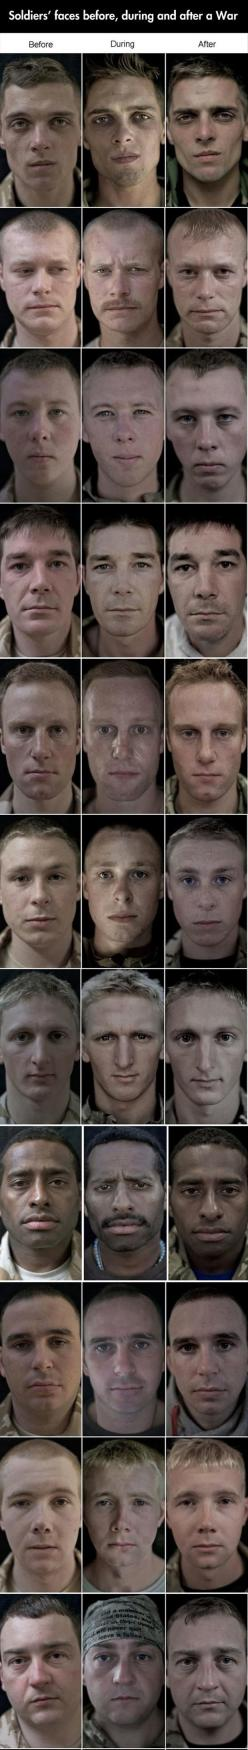 woah: Soldiers Faces, Random Pictures, Interesting History, Gaunt Face, Pictures Of People Crying, Army Brat, Military Heroes, Soldier S Faces, Sad Army Pictures